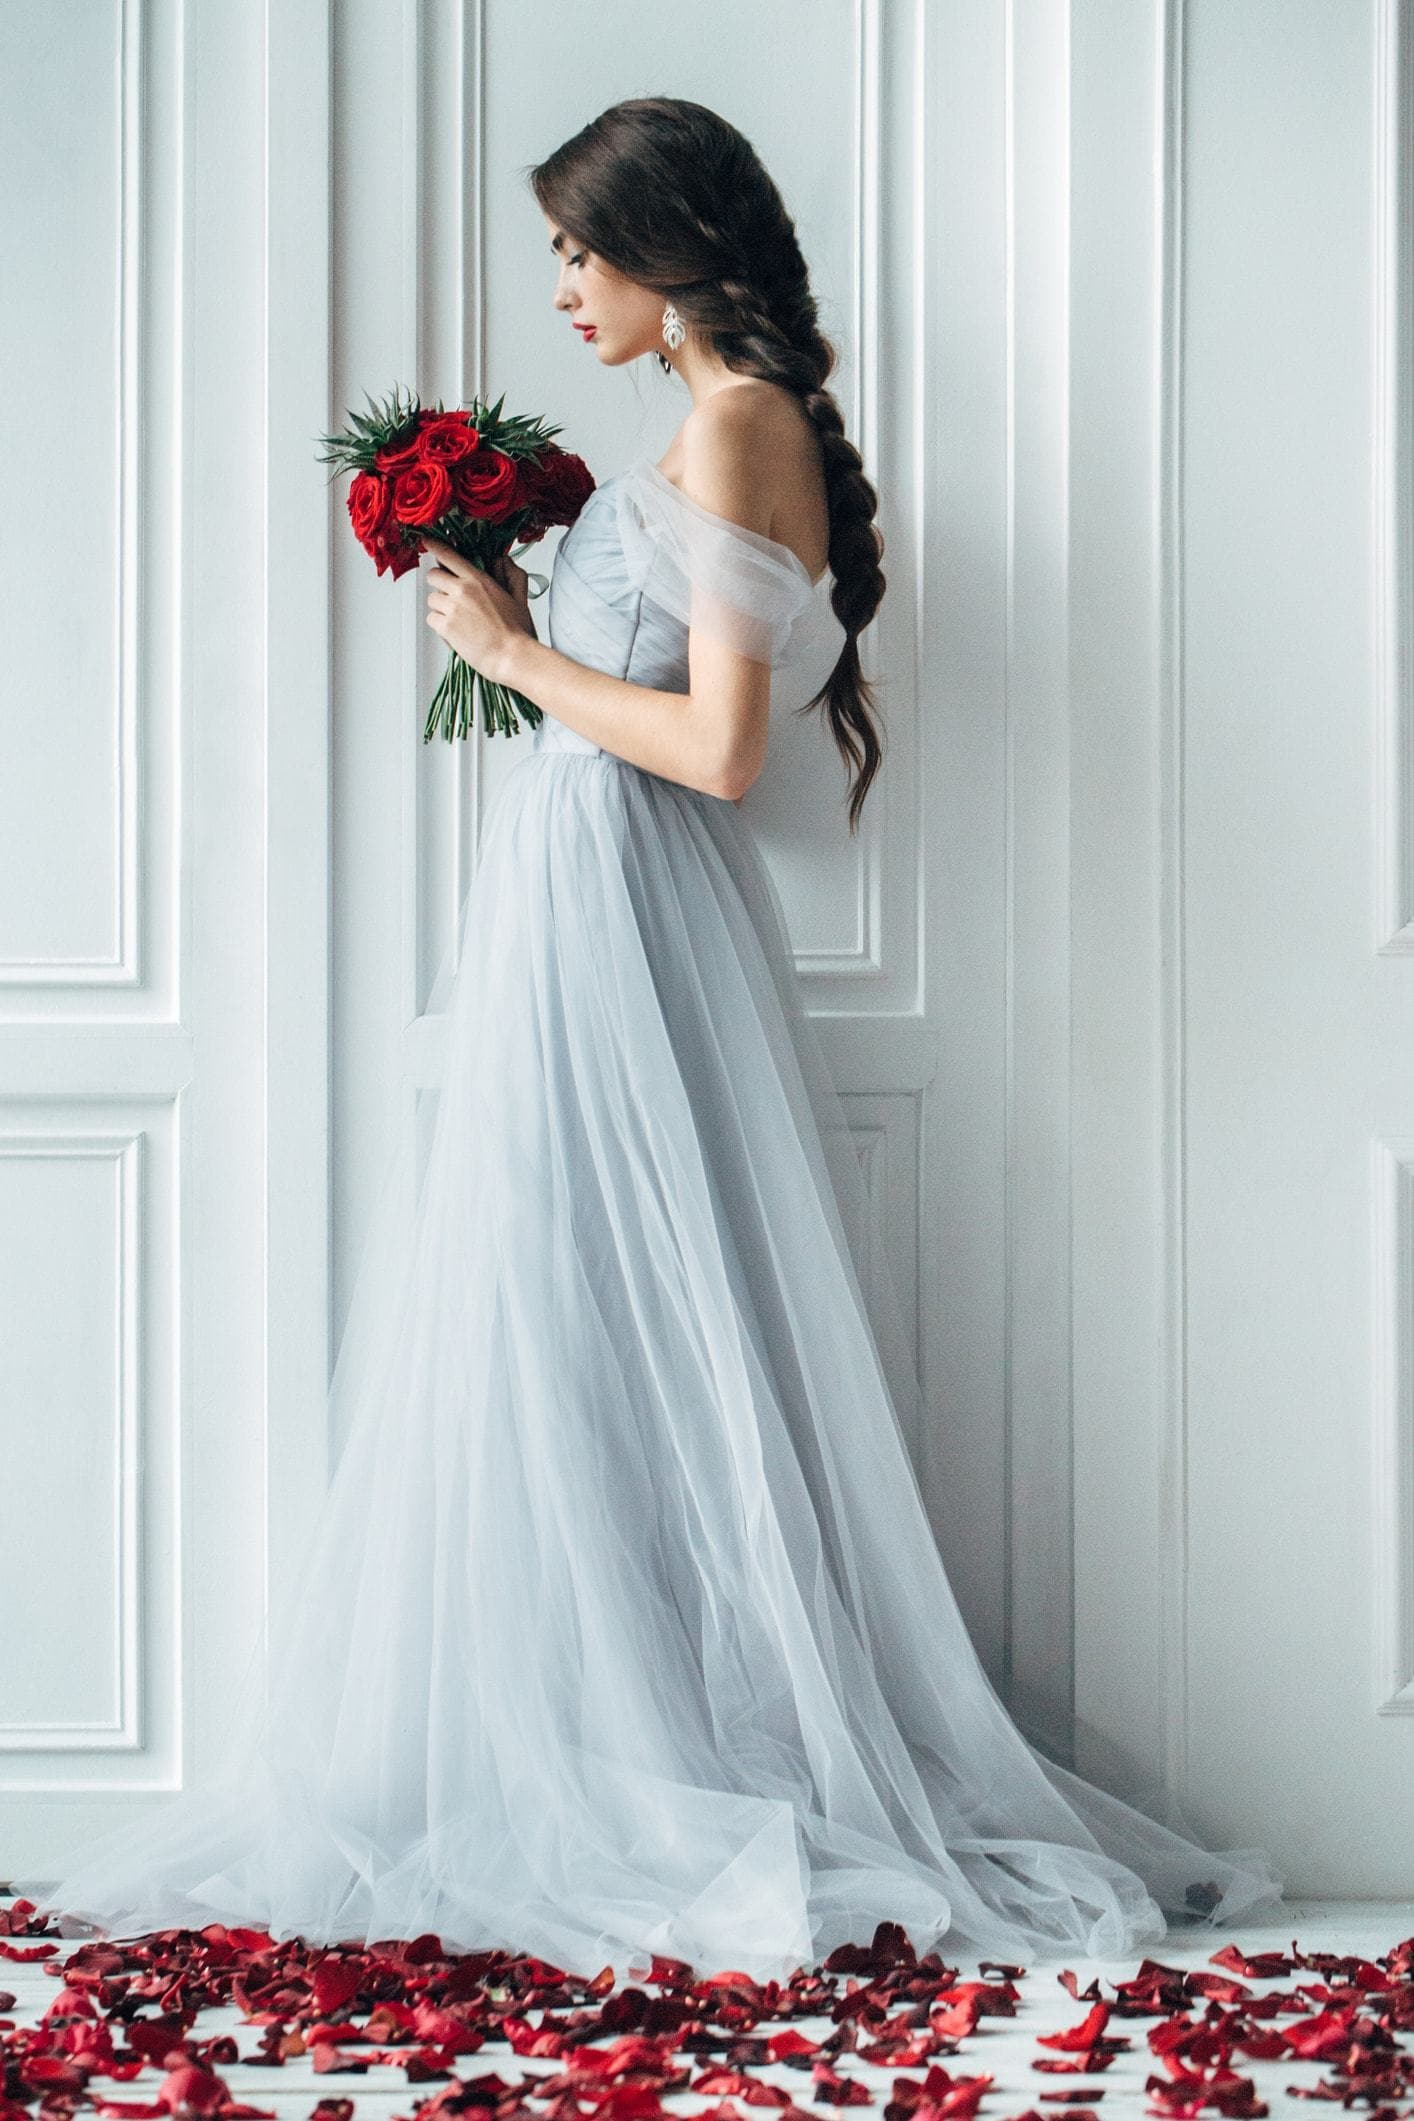 2018 Top Wedding Hairstyles For Amazing Bridal Style! 3